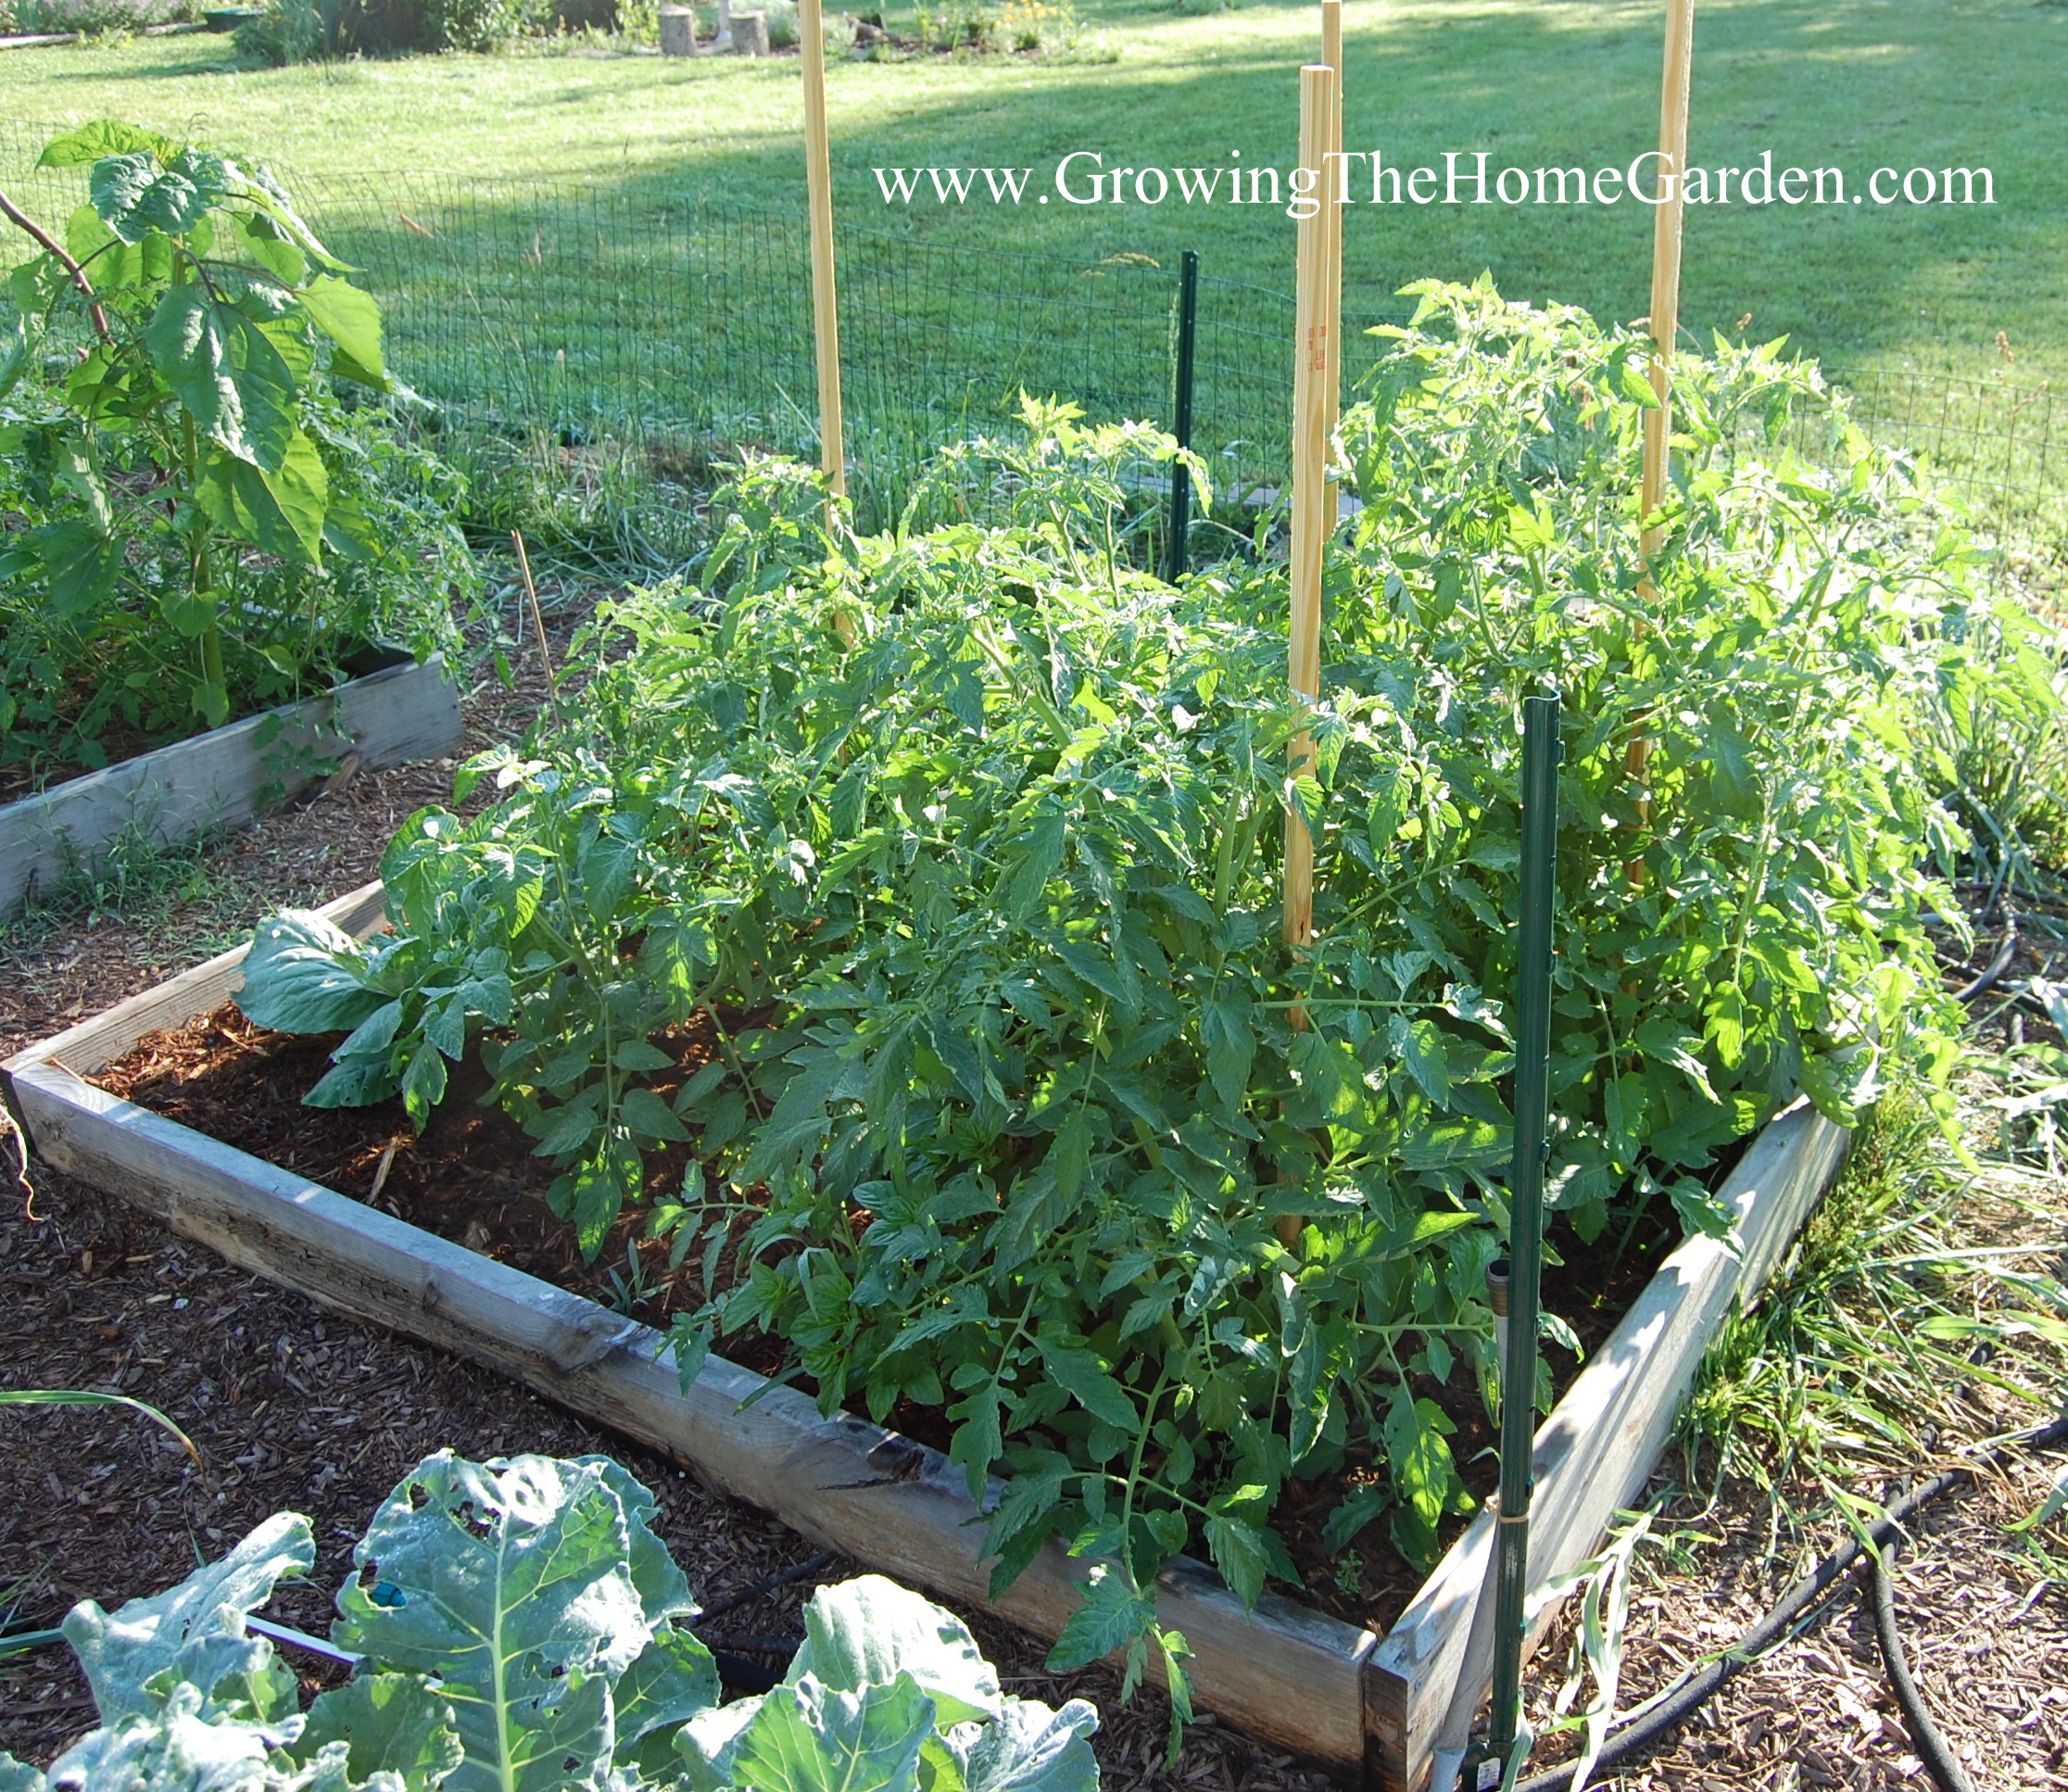 11 tips for designing a raised bed vegetable garden layout for Vegetable garden layout